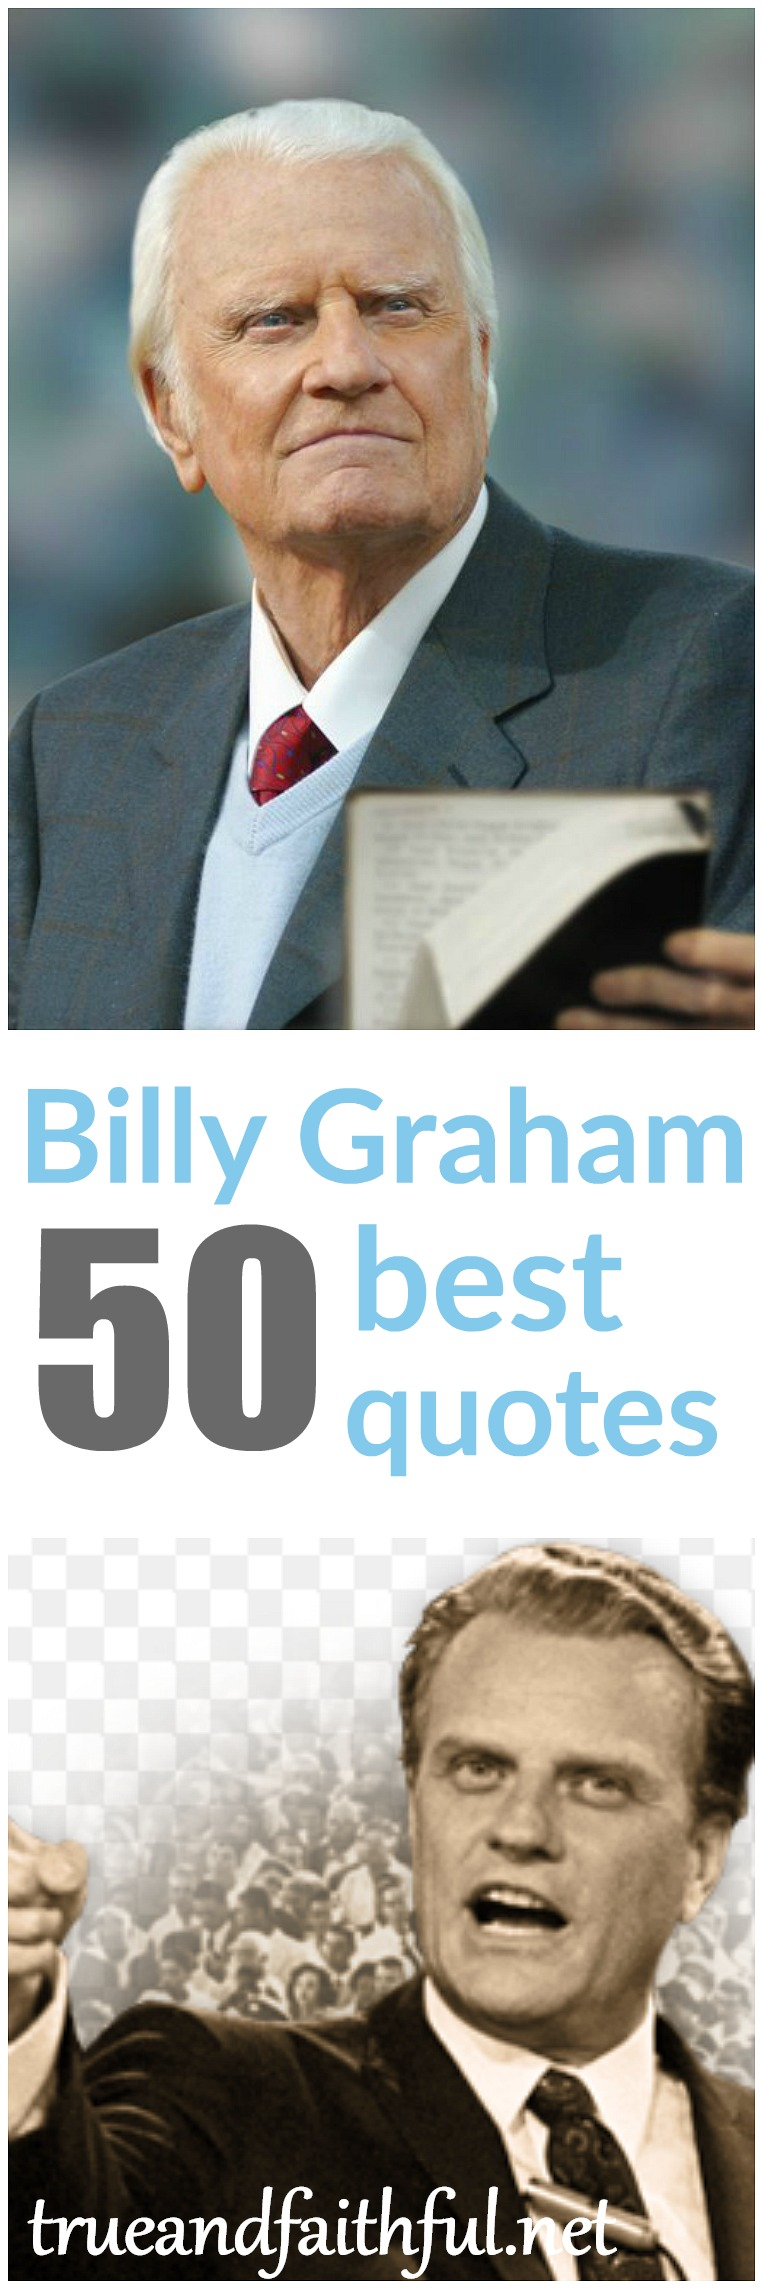 50+ Billy Graham best quotes | top quotes Billy Graham | best Christian quotes